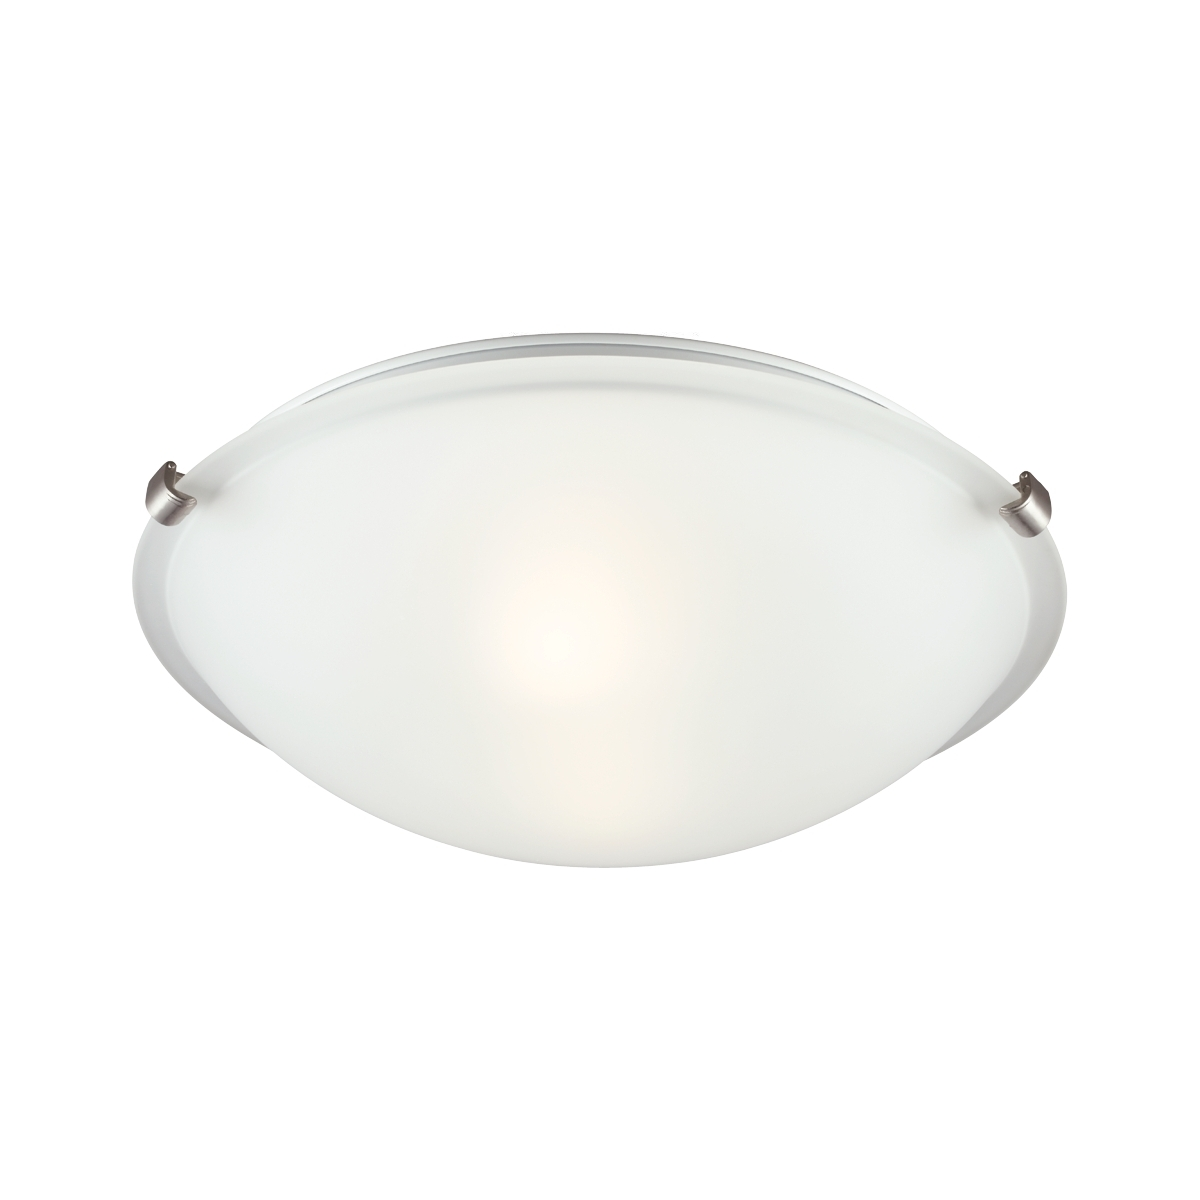 Sea Gull Lighting Signature 2 Light Flush Mount in Brushed Nickel 7532402-962